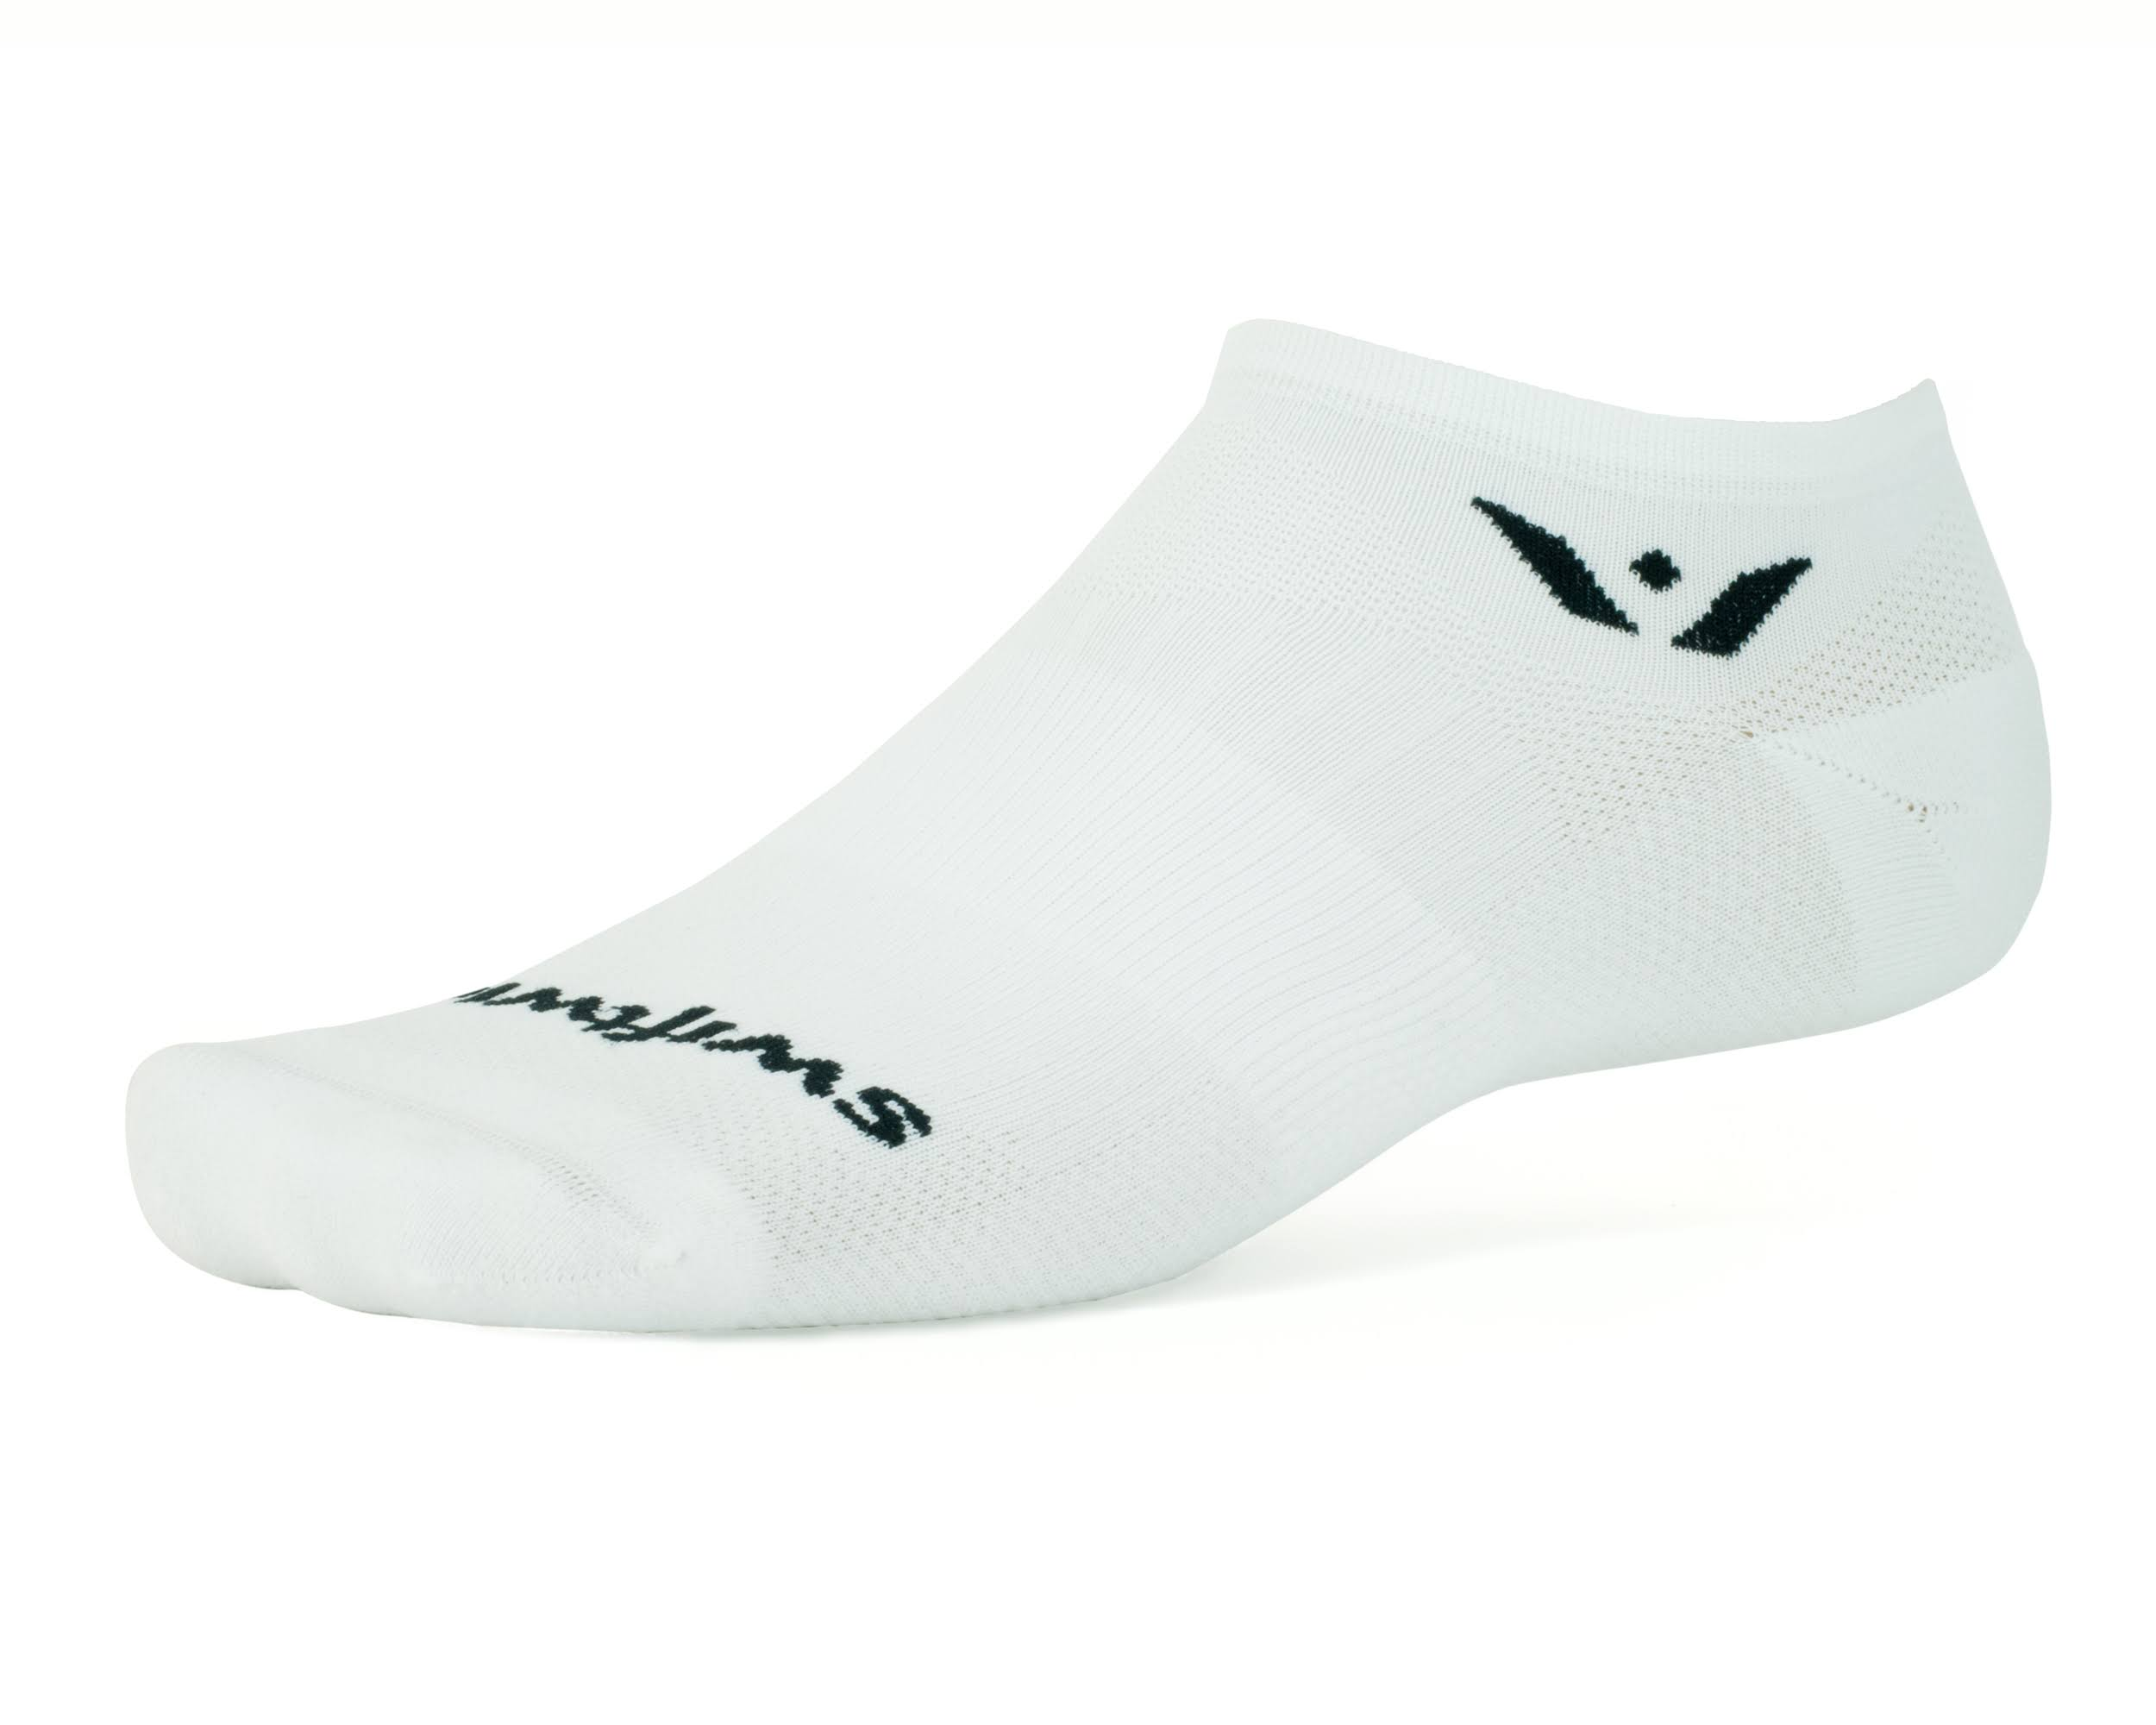 Swiftwick Zero Aspire Socks - Medium, White